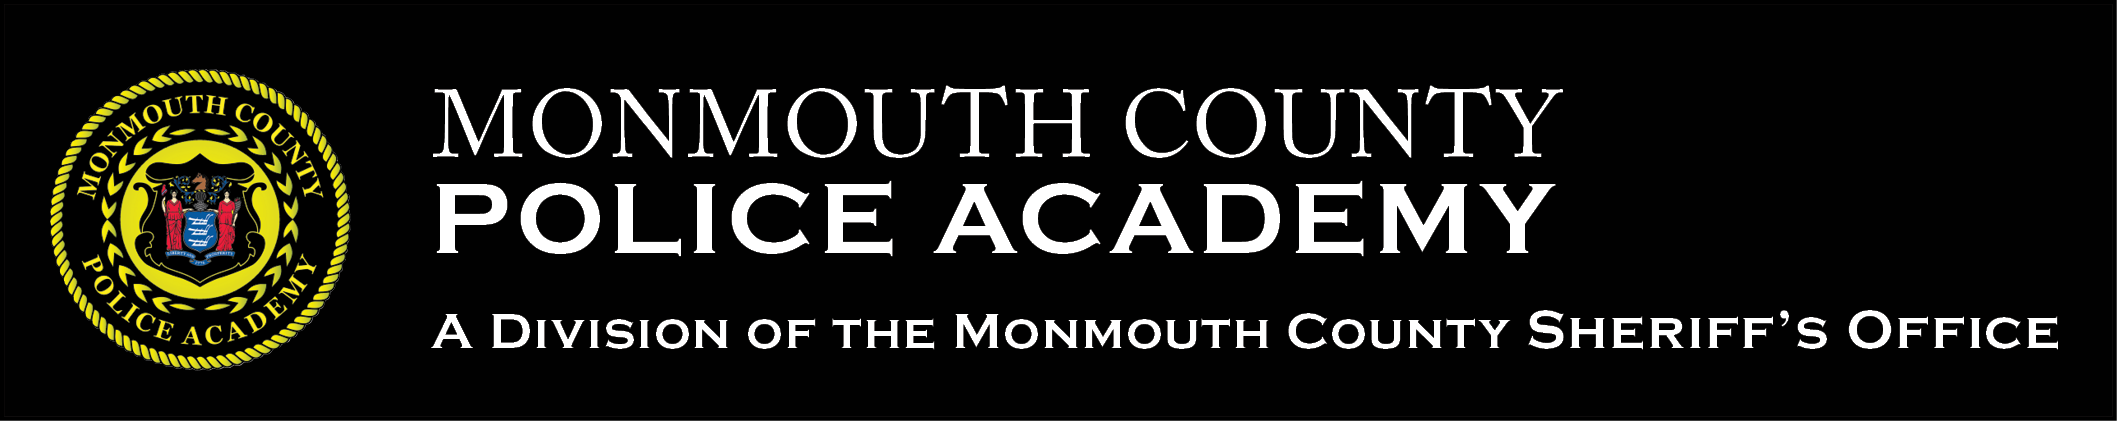 Monmouth County Police Academy